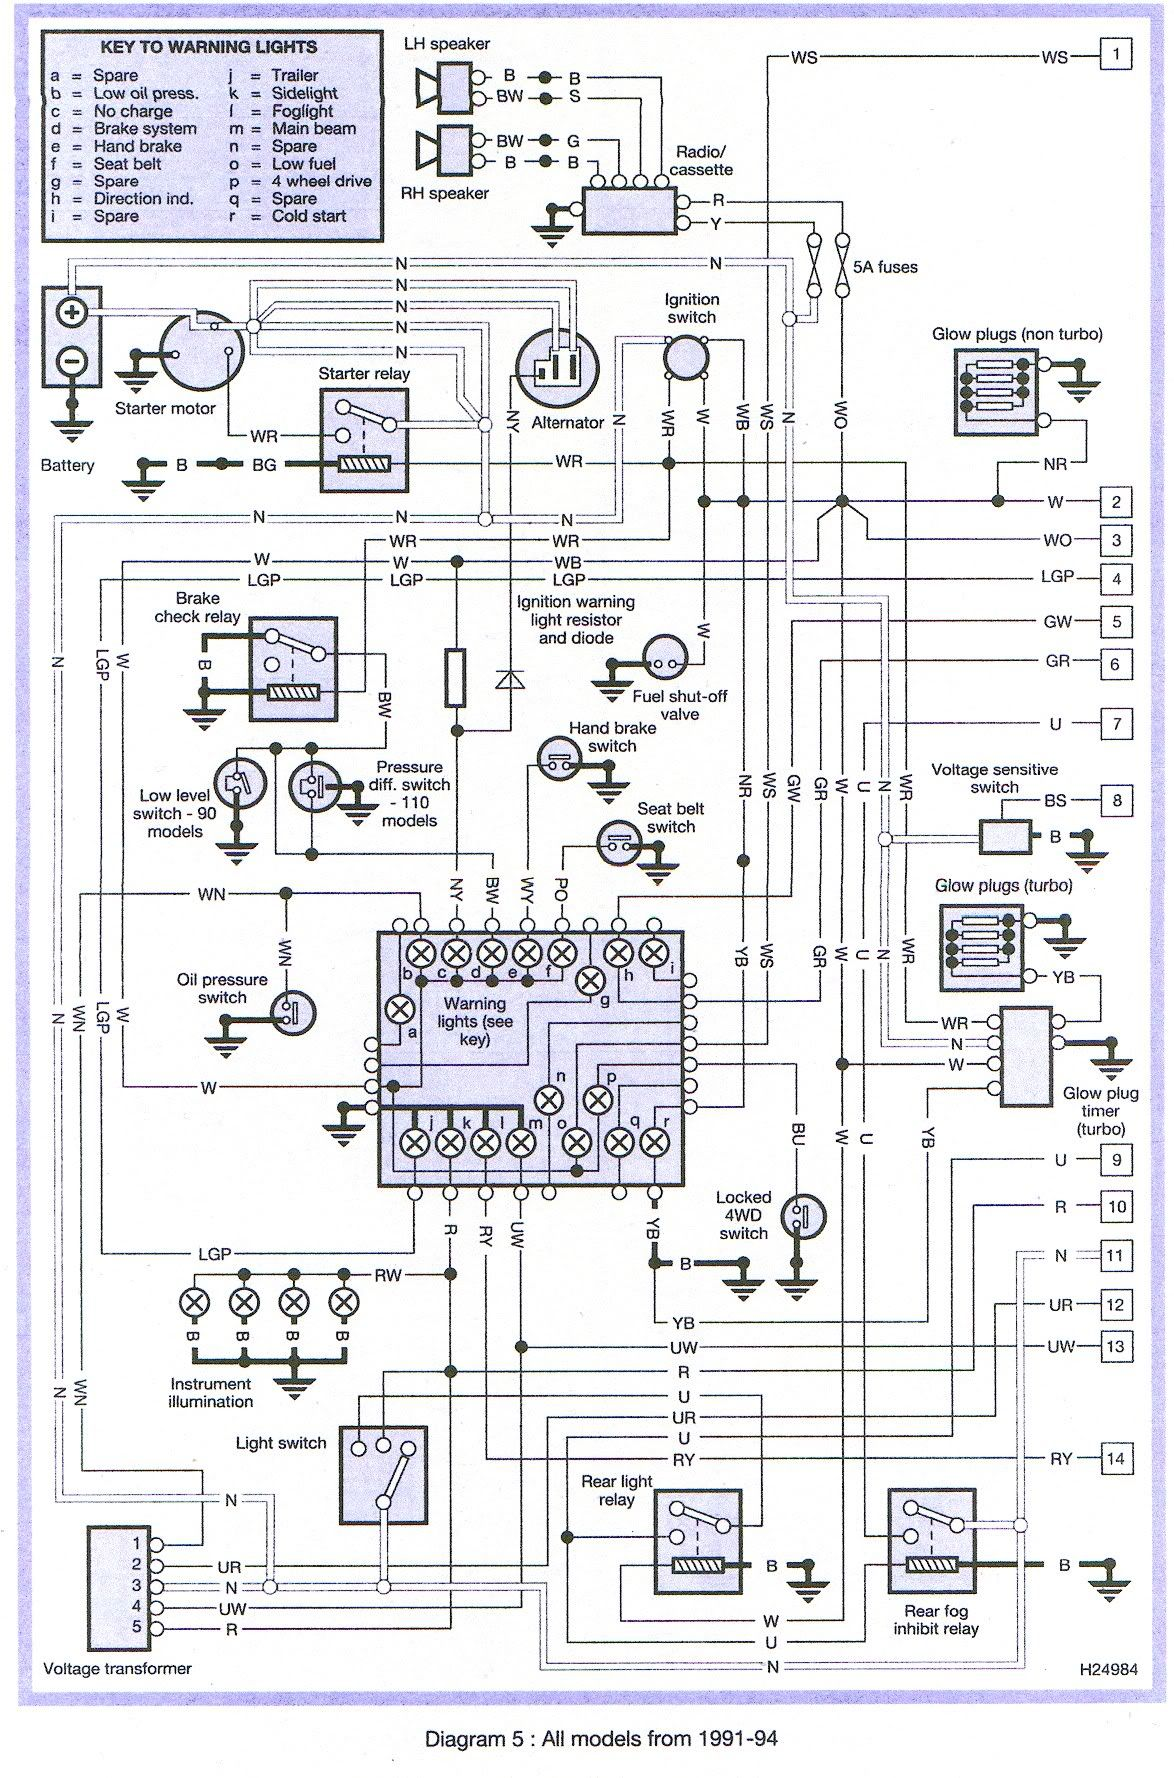 07629544bfff38ad2881b2c21312c6e6 land rover discovery wiring diagram manual repair with engine 2004 land rover discovery wiring diagram at soozxer.org